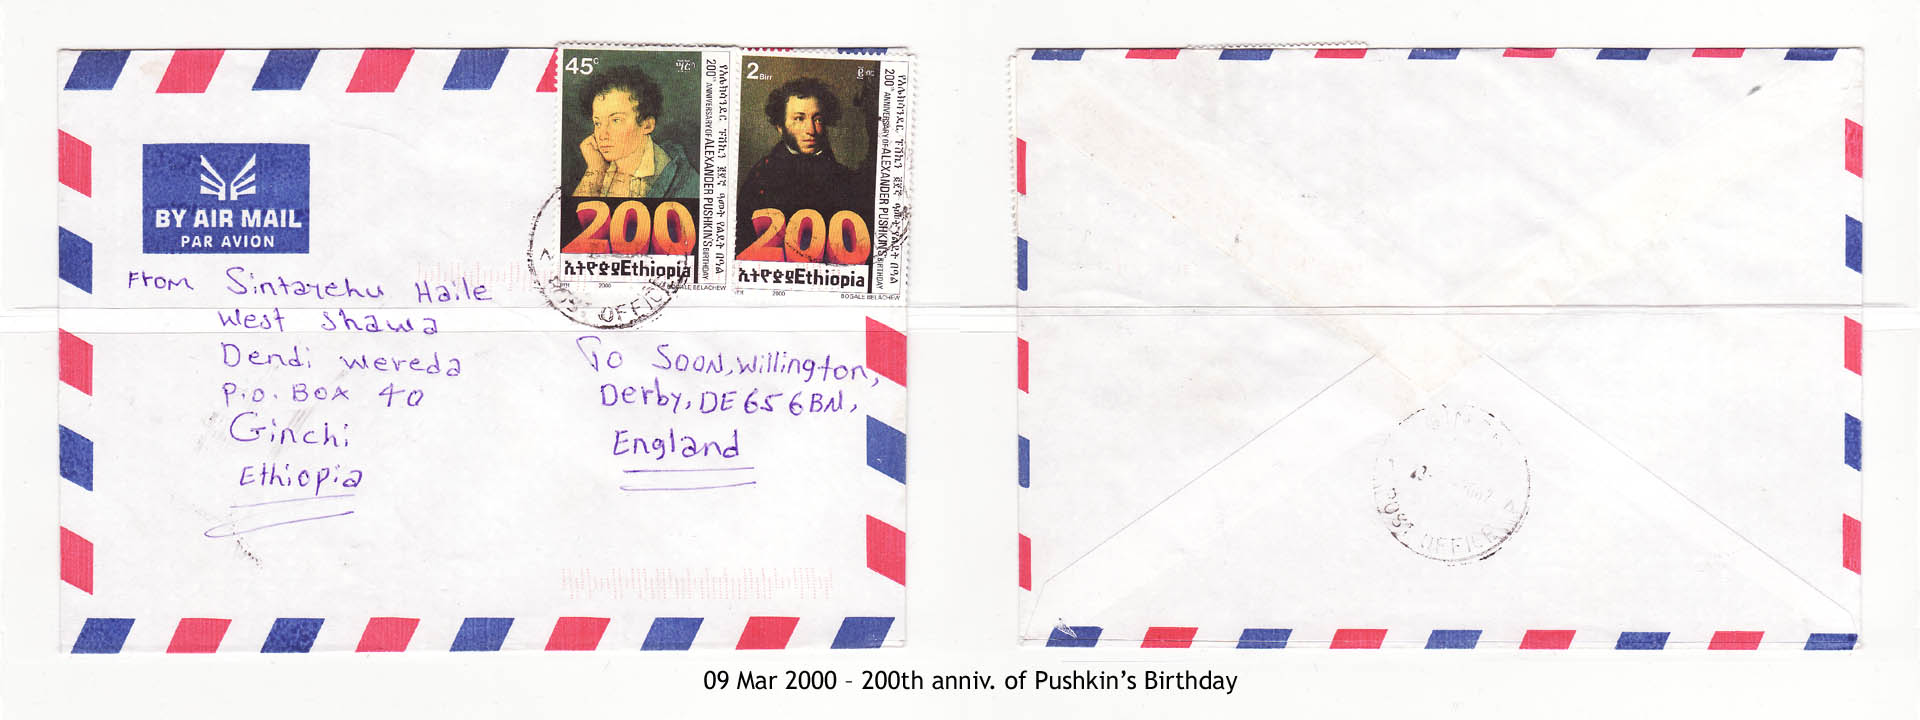 20000309 – 200th anniv. of Pushkin's Birthday